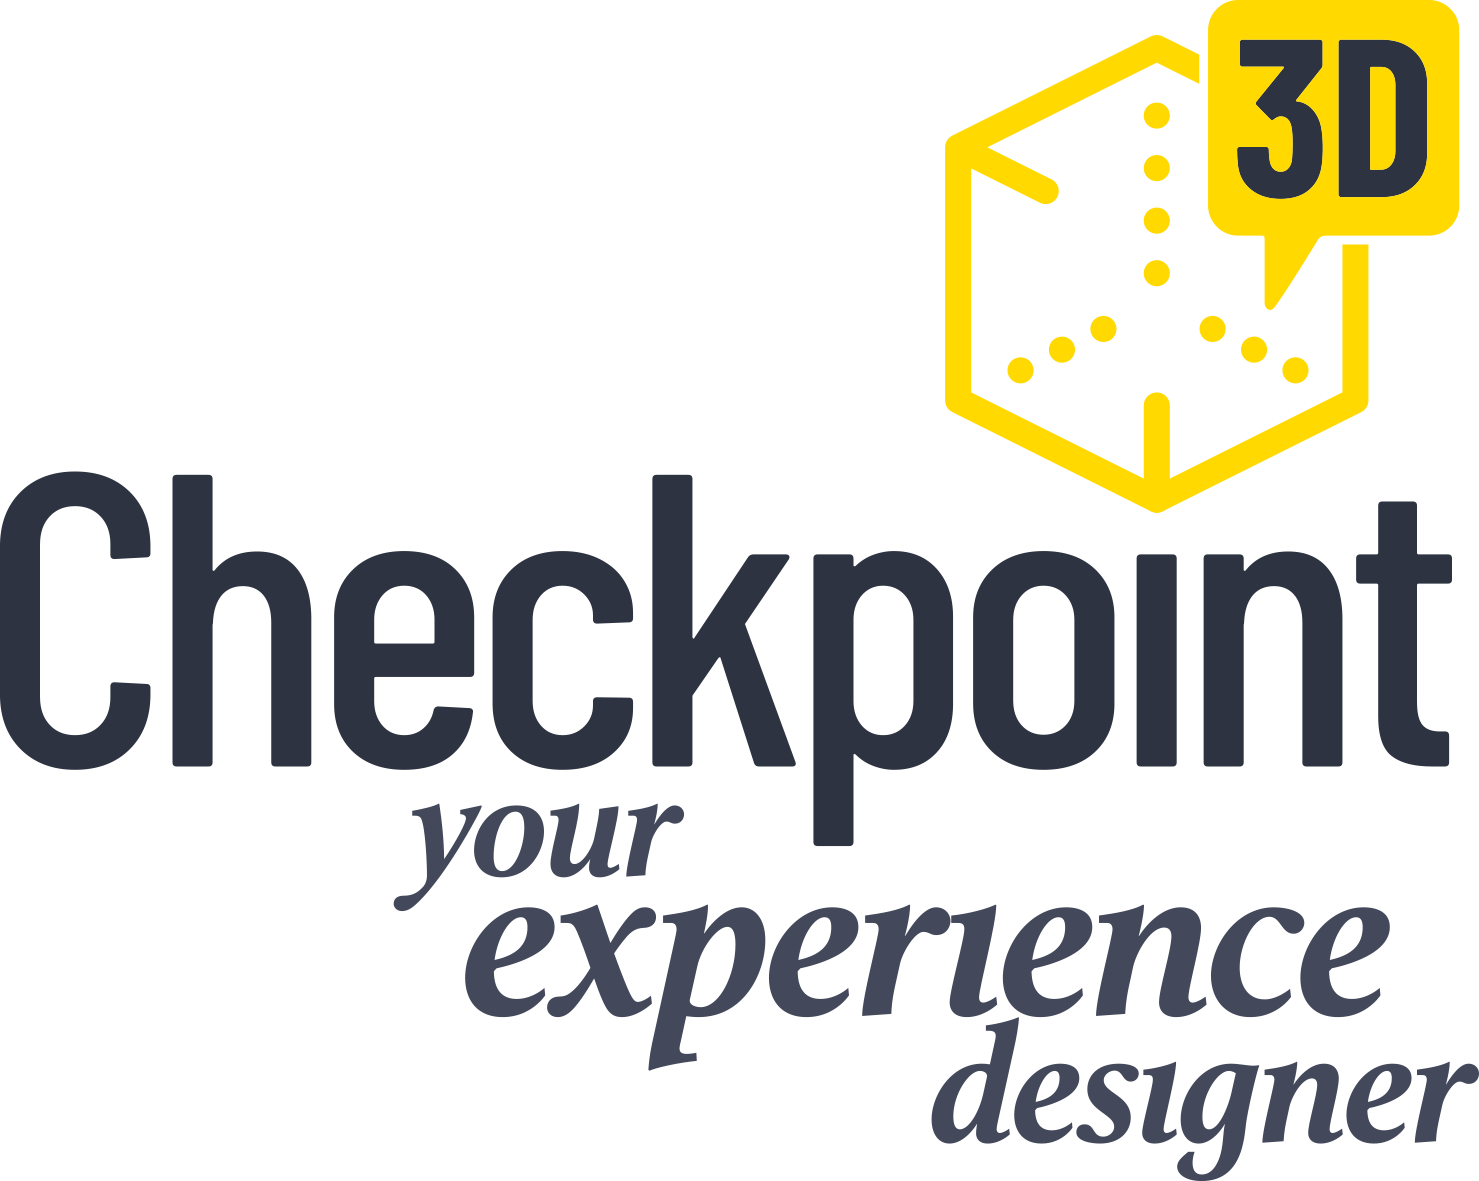 Checkpoint_3D logo